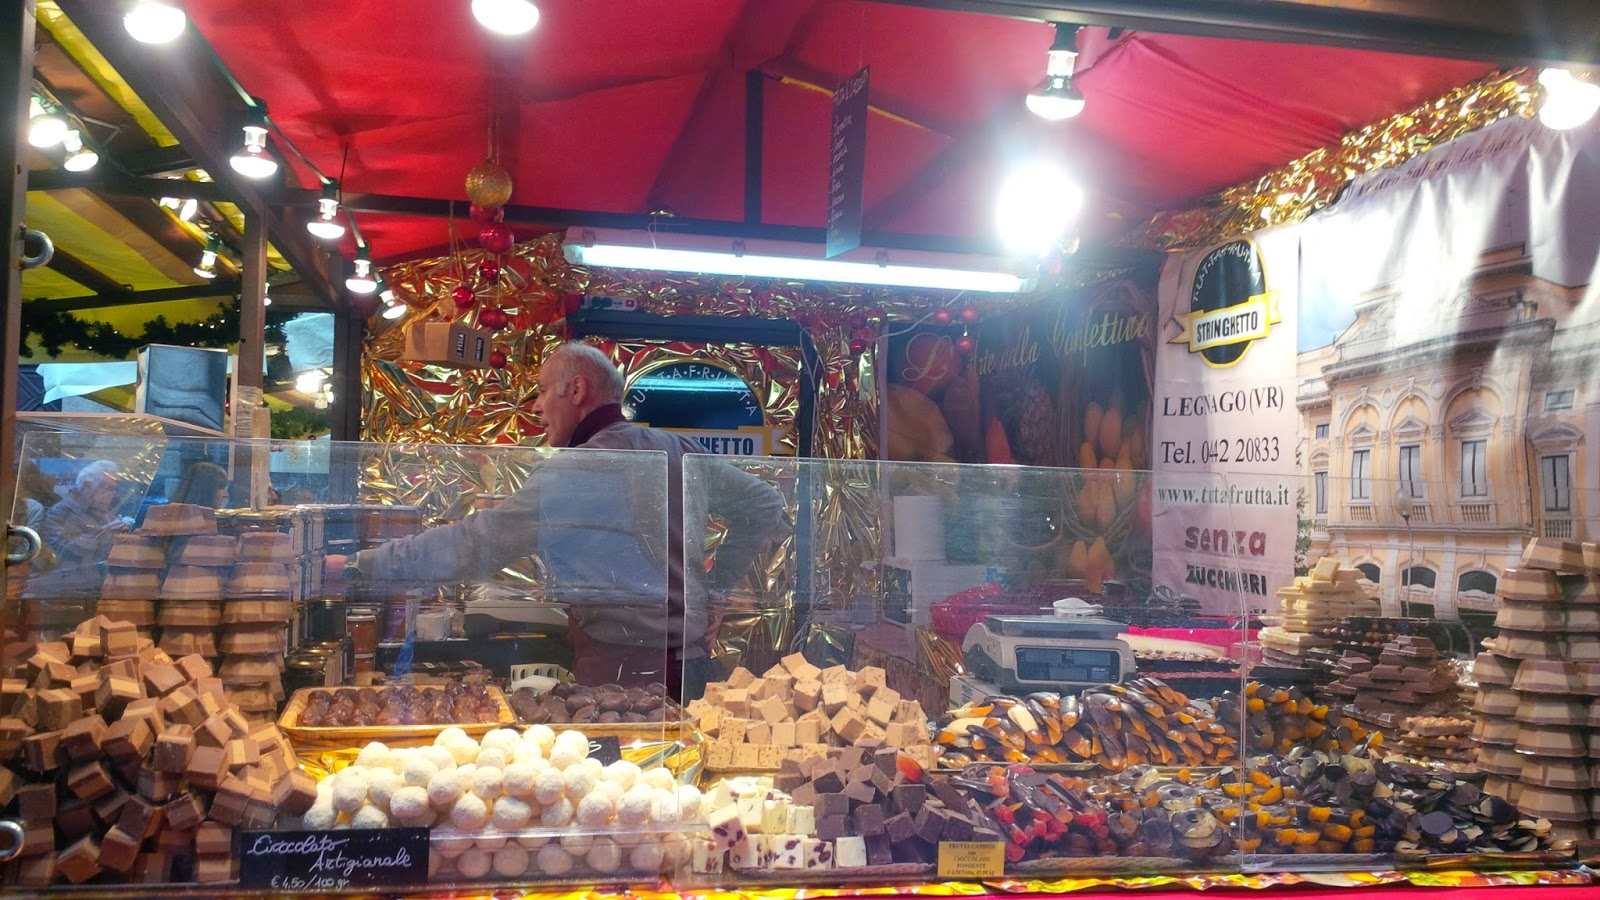 A chocolate stall at the Christmas market in Verona